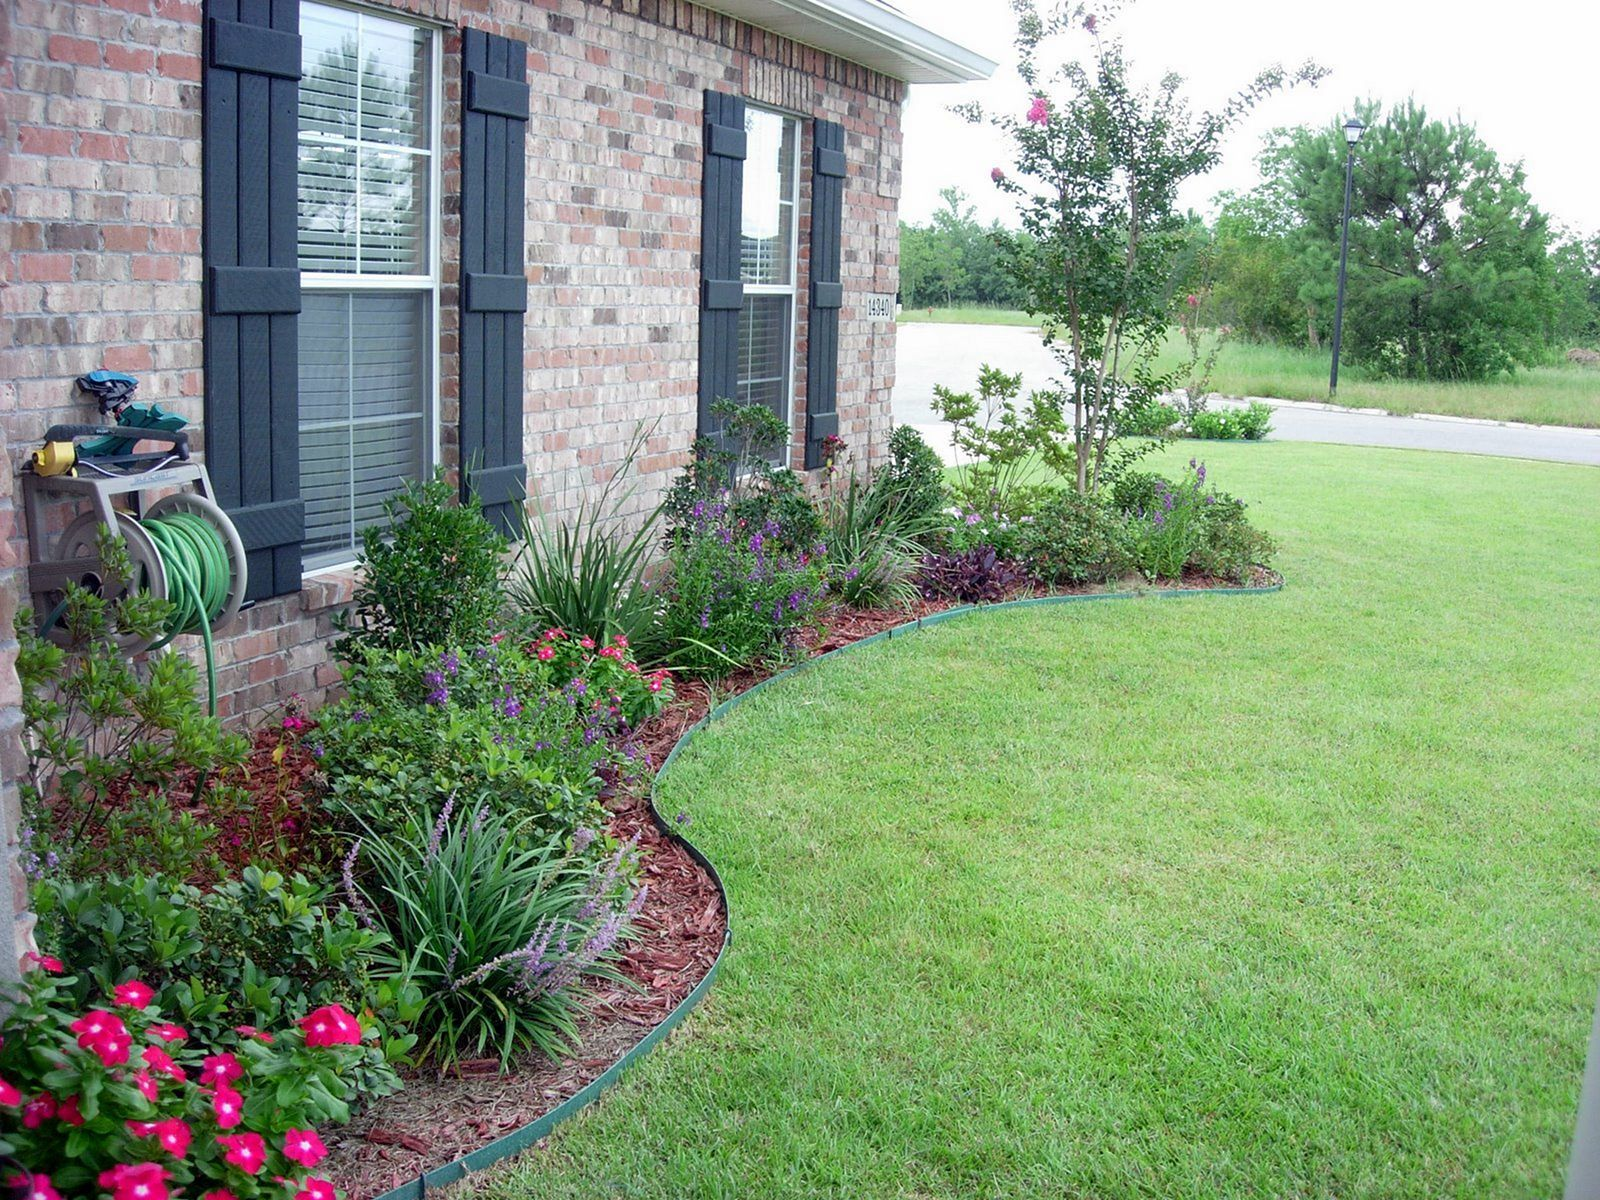 Flower Beds Decor For Front Yard Small Flower Beds Small